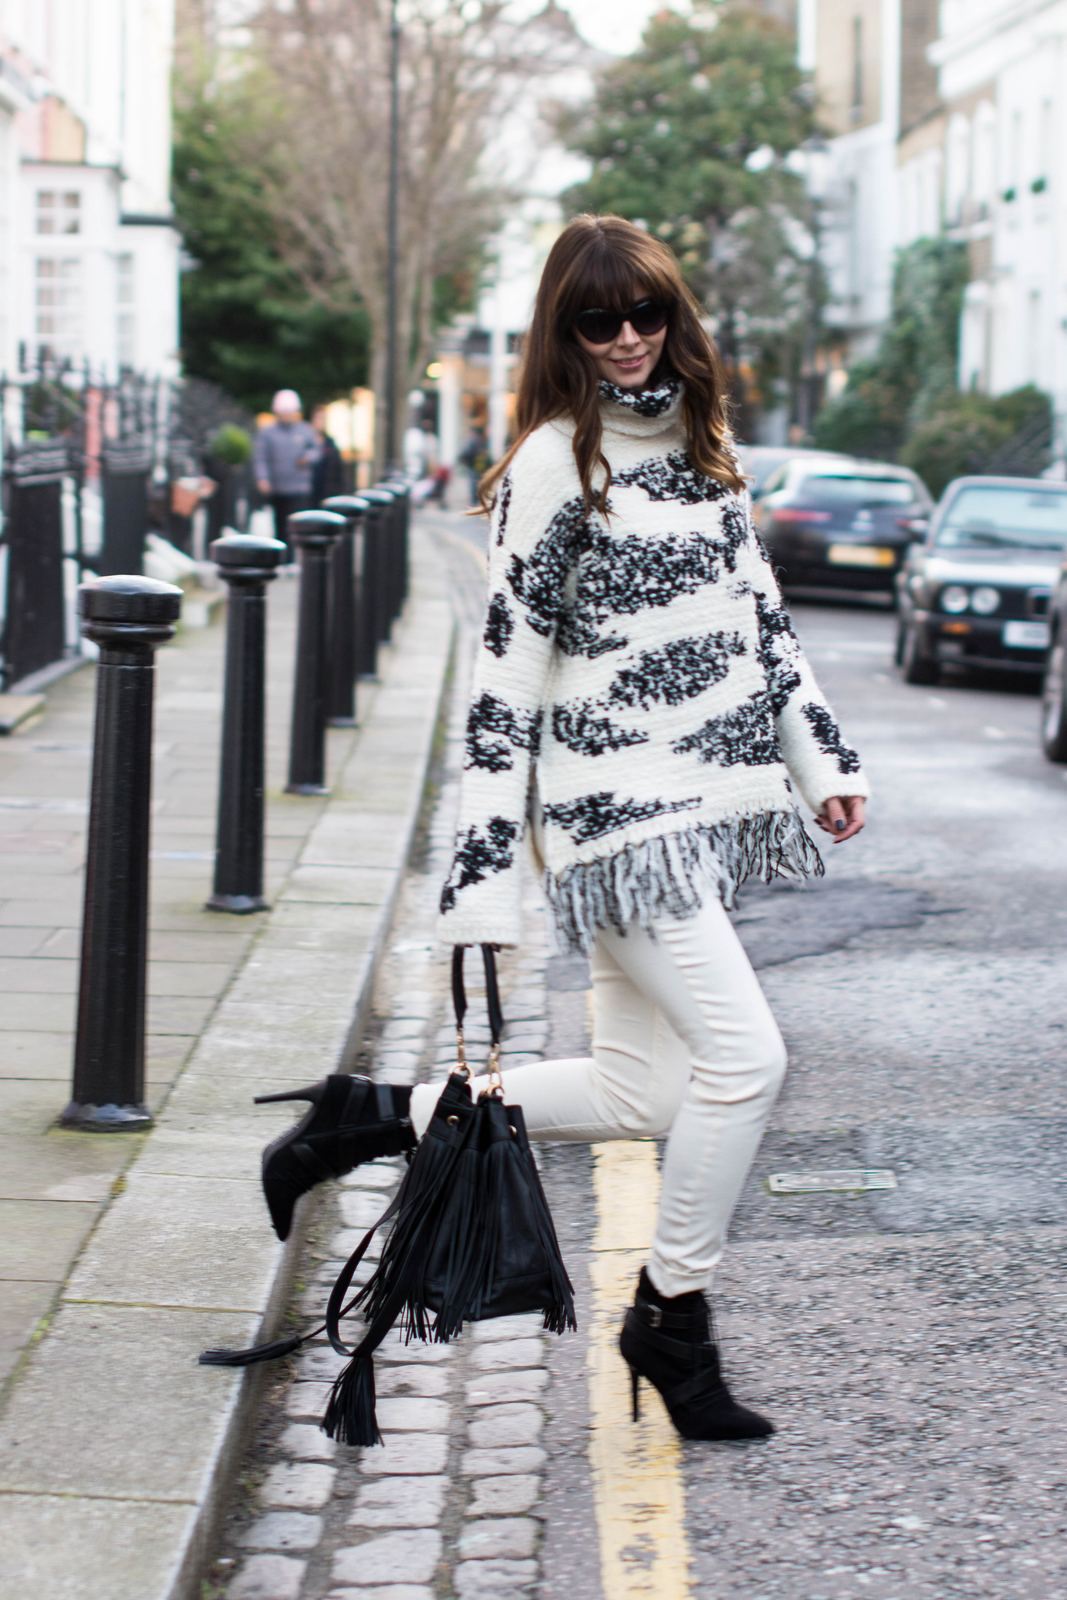 EJSTYLE - Zara fringe black white jumper, Zara TRF white jeans, Zara lace up ankle boots, Isabel Marant Inspired look, H&M fringed bucket bag, OOTD, fashion blogger, street style london